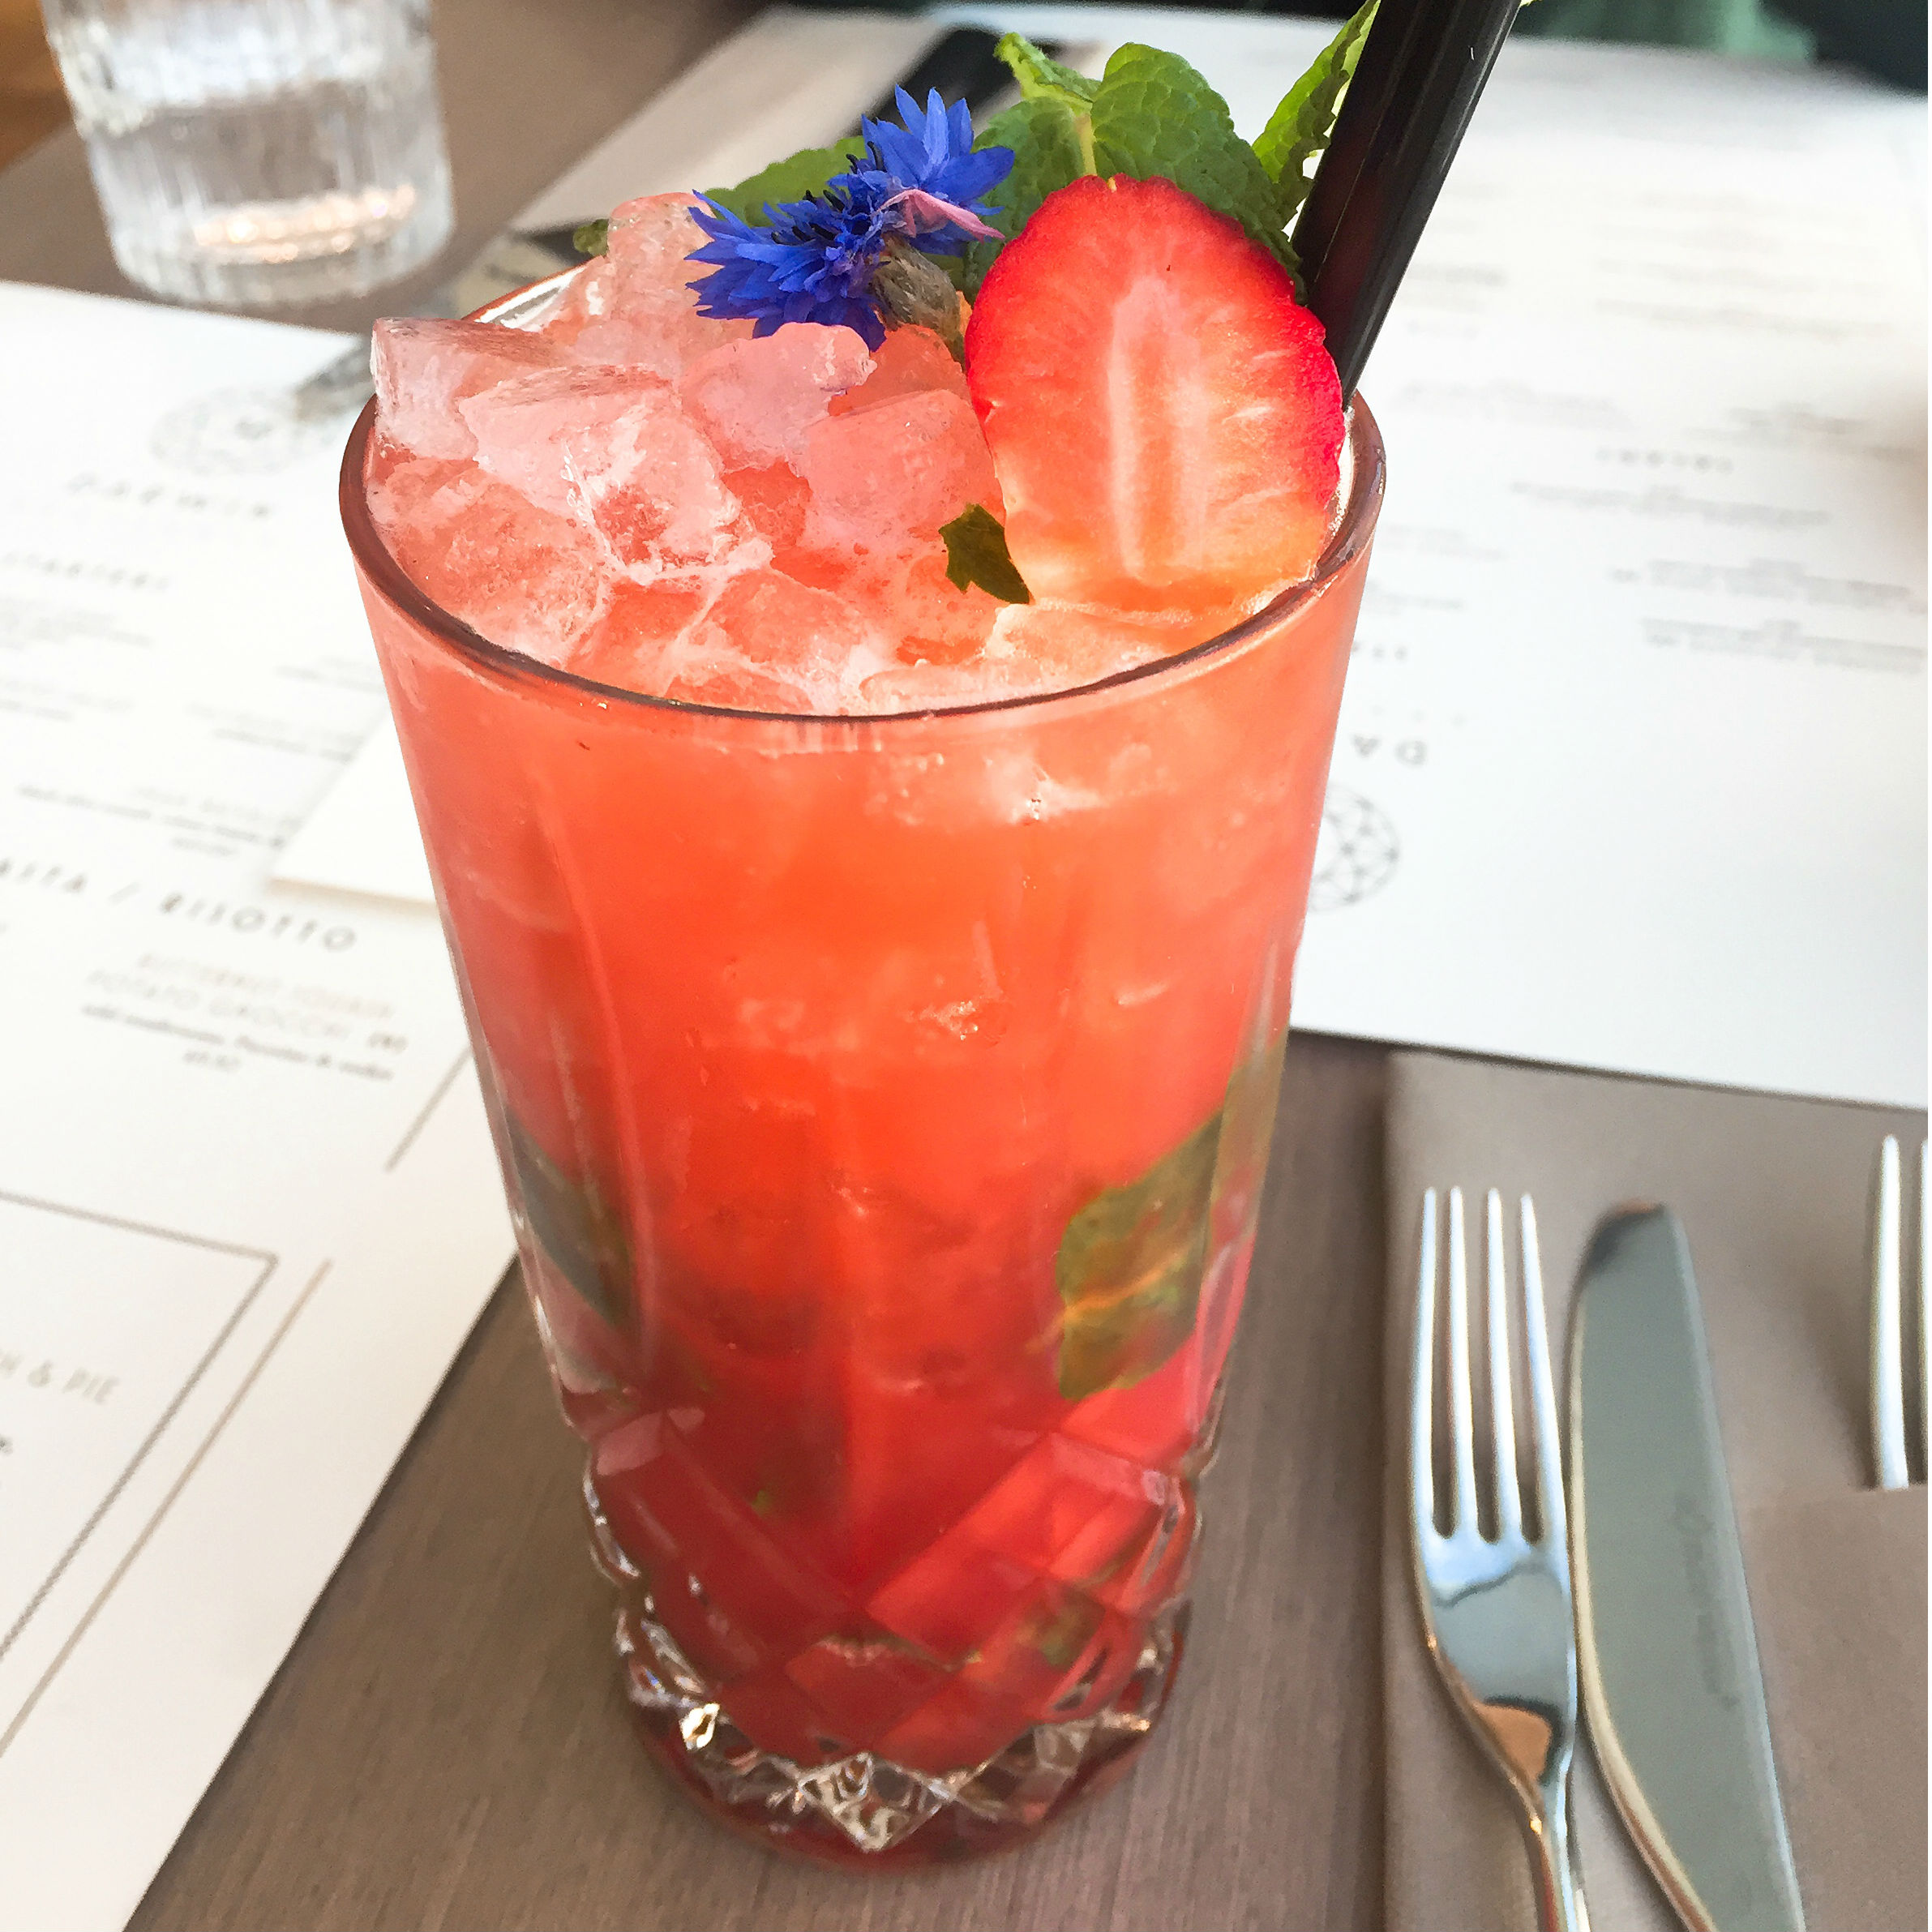 Cocktails at Darwin Brasserie, Sky Garden